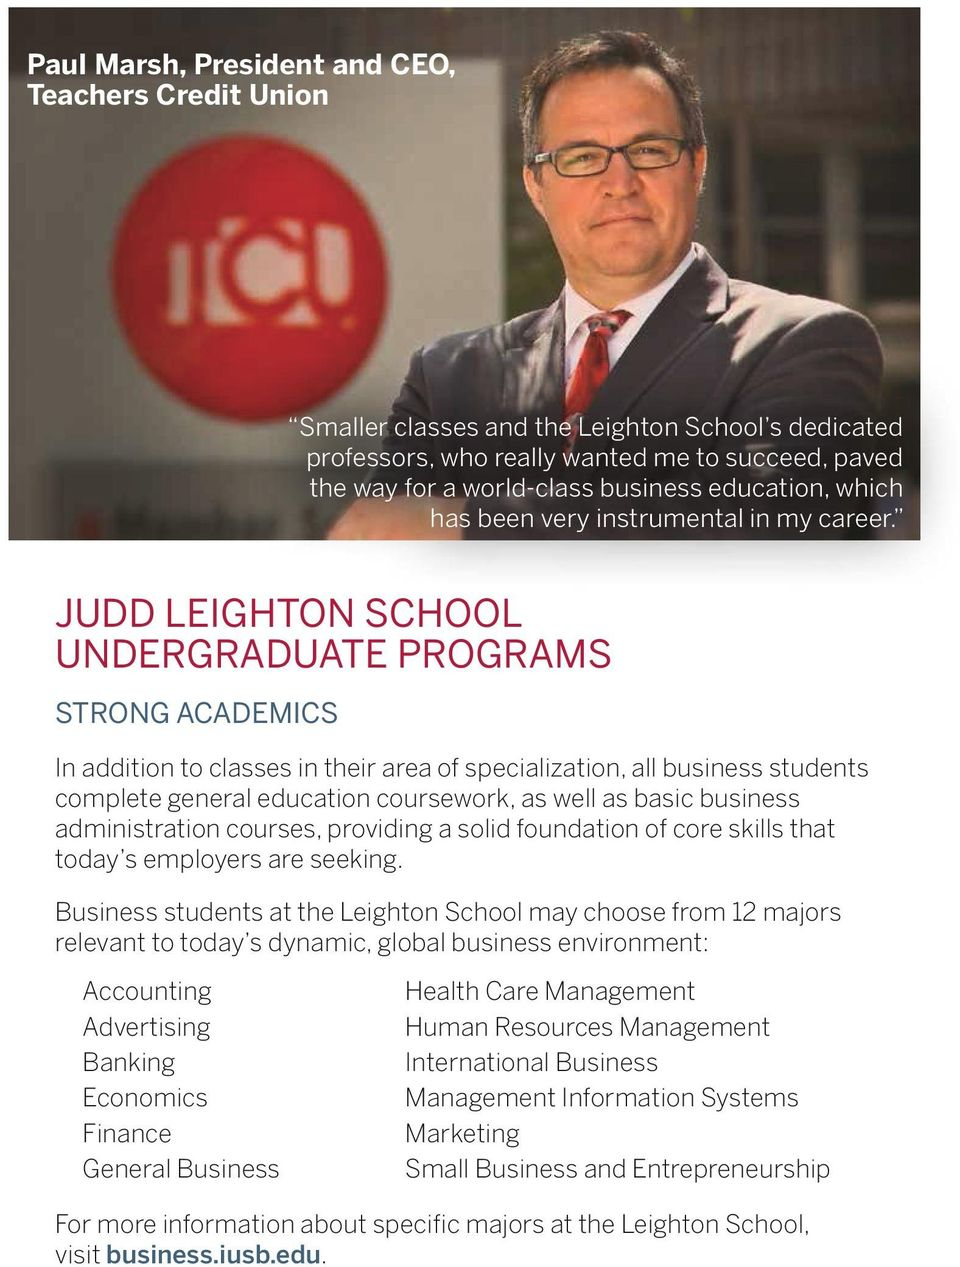 JUDD LEIGHTON SCHOOL UNDERGRADUATE PROGRAMS STRONG ACADEMICS In addition to classes in their area of specialization, all business students complete general education coursework, as well as basic